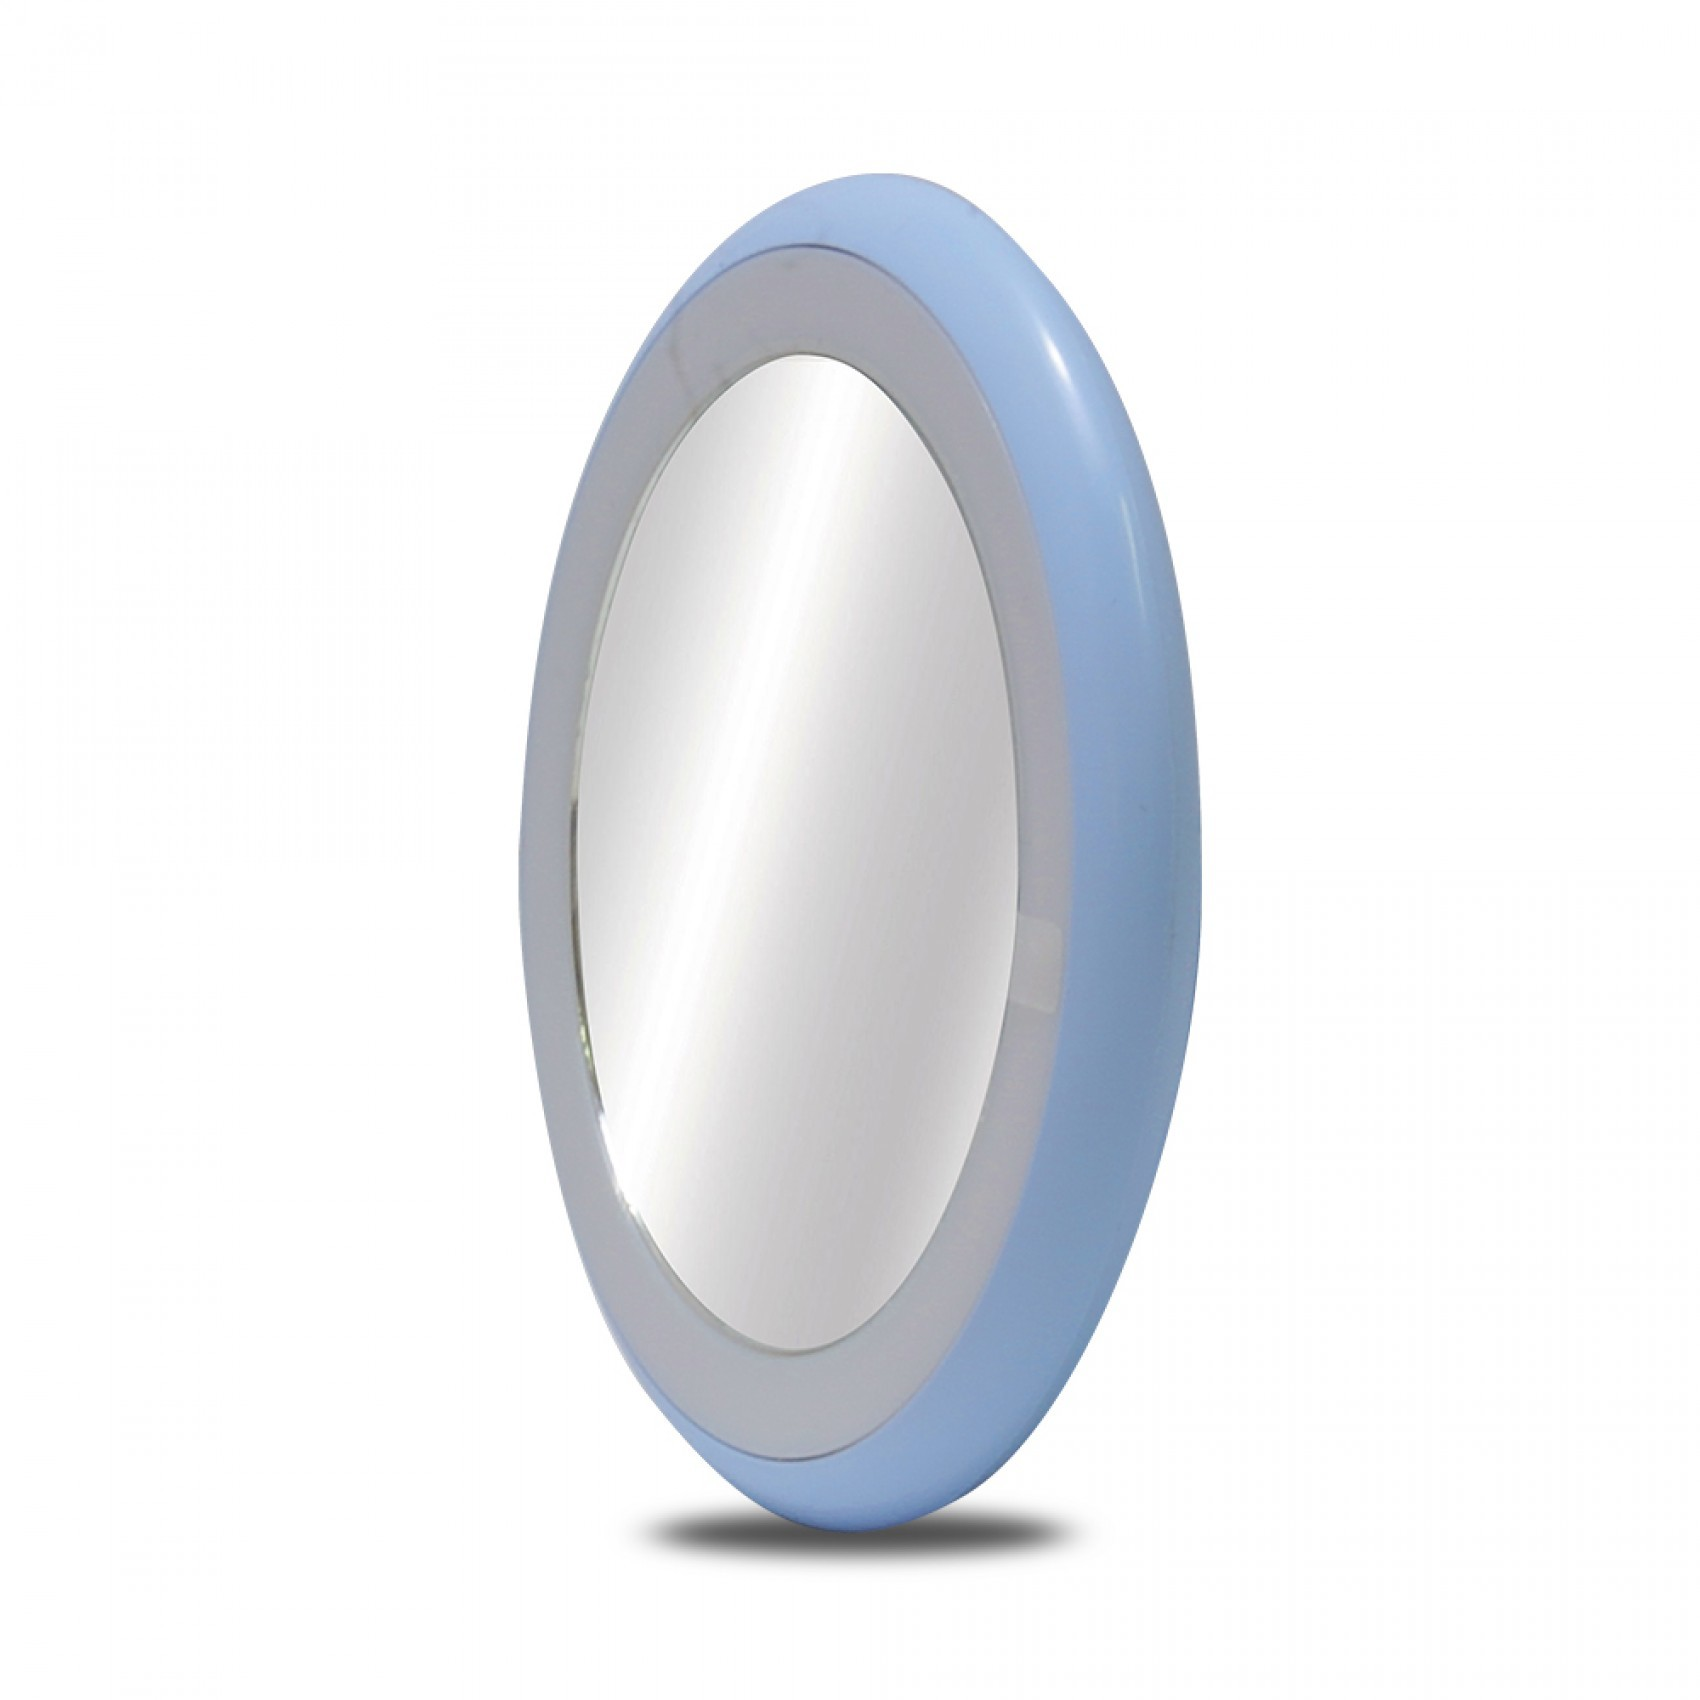 Portable Led Makeup Vanity Mirror With Lamp - Blue